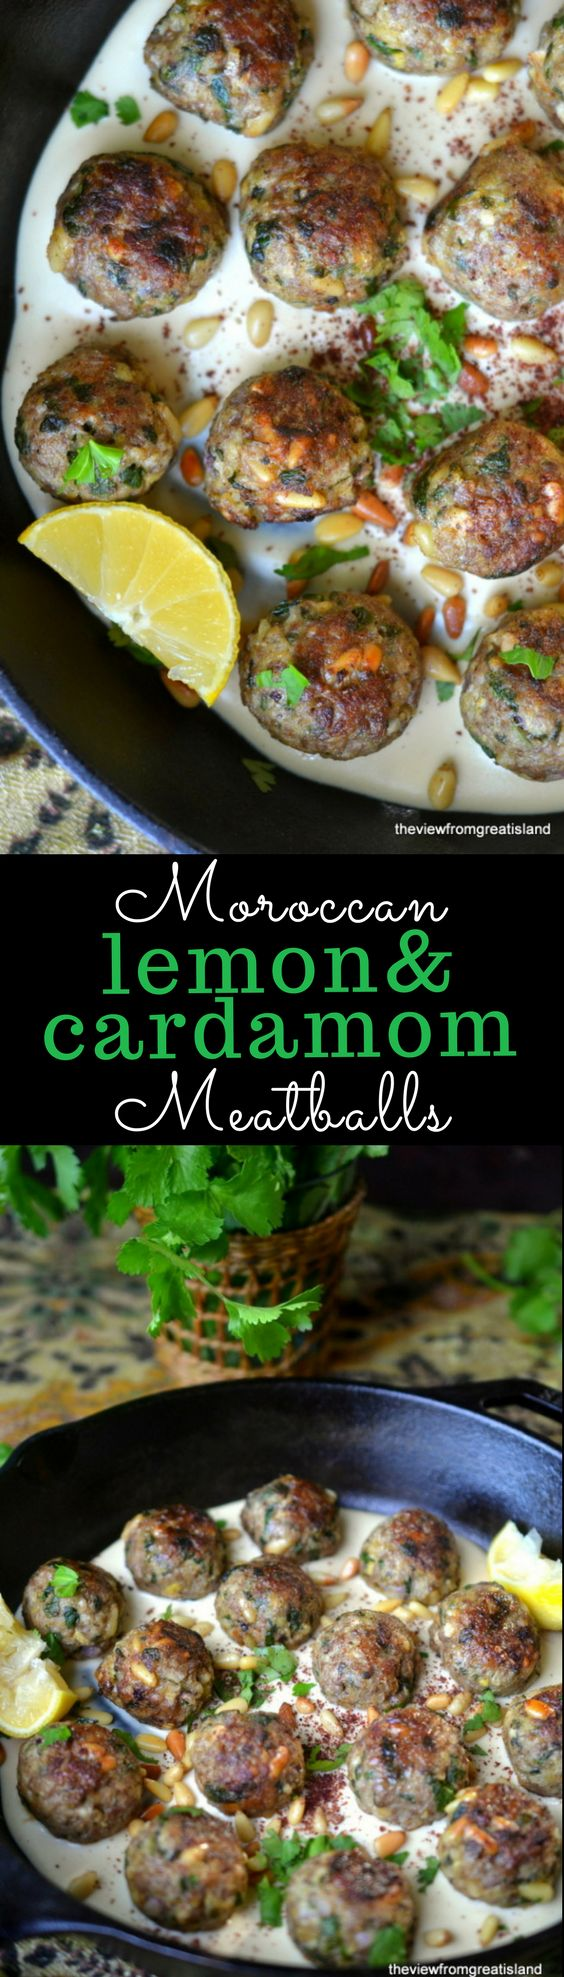 Moroccan Lemon and Cardamom Meatballs ~ I can't imagine a more exciting dinner than a plate of these lemony cardamom spiced lamb meatballs nestled in creamy tahini sauce.  I have a feeling this is going to become your new favorite meal!